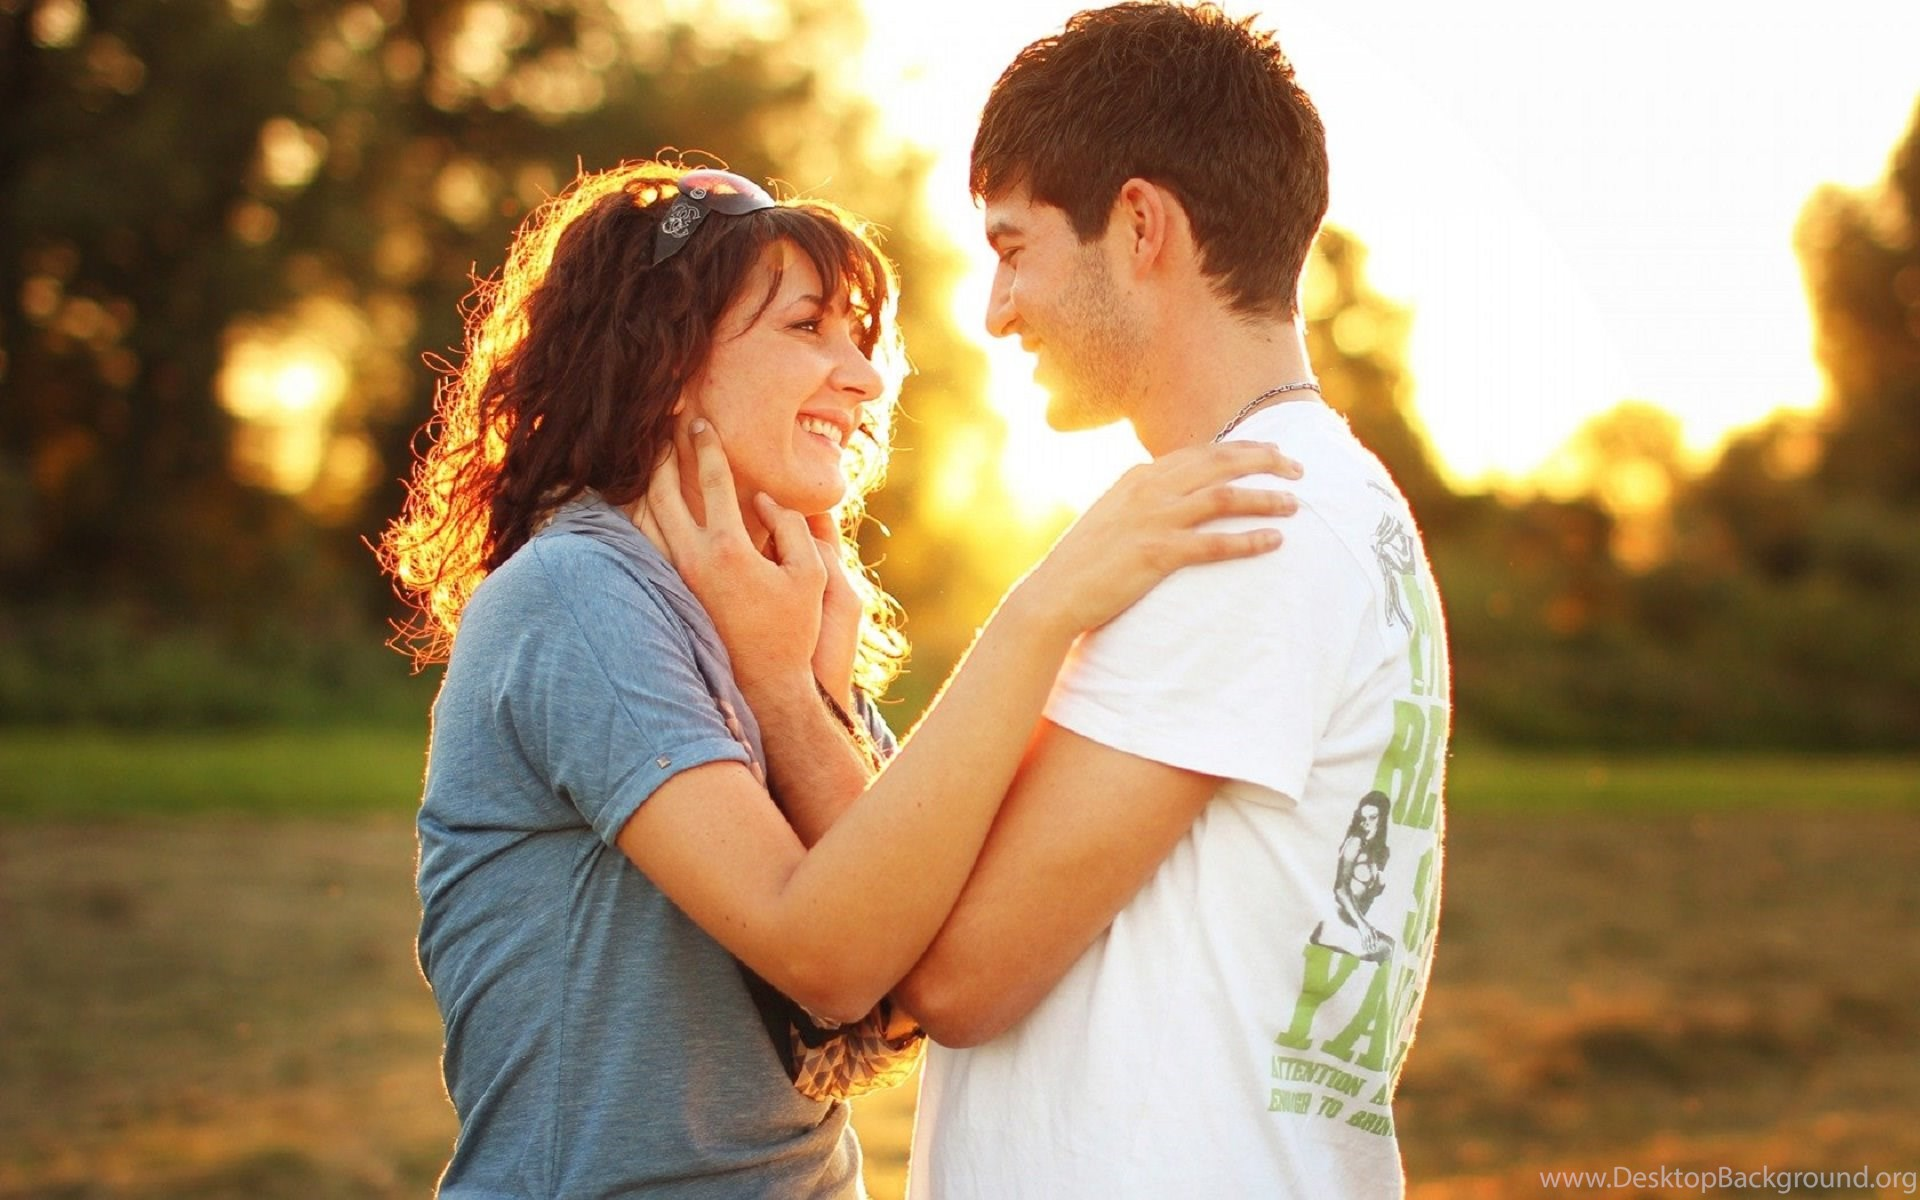 Beautiful Couple Love Romantic Hd Wallpapers And Pics Free Download